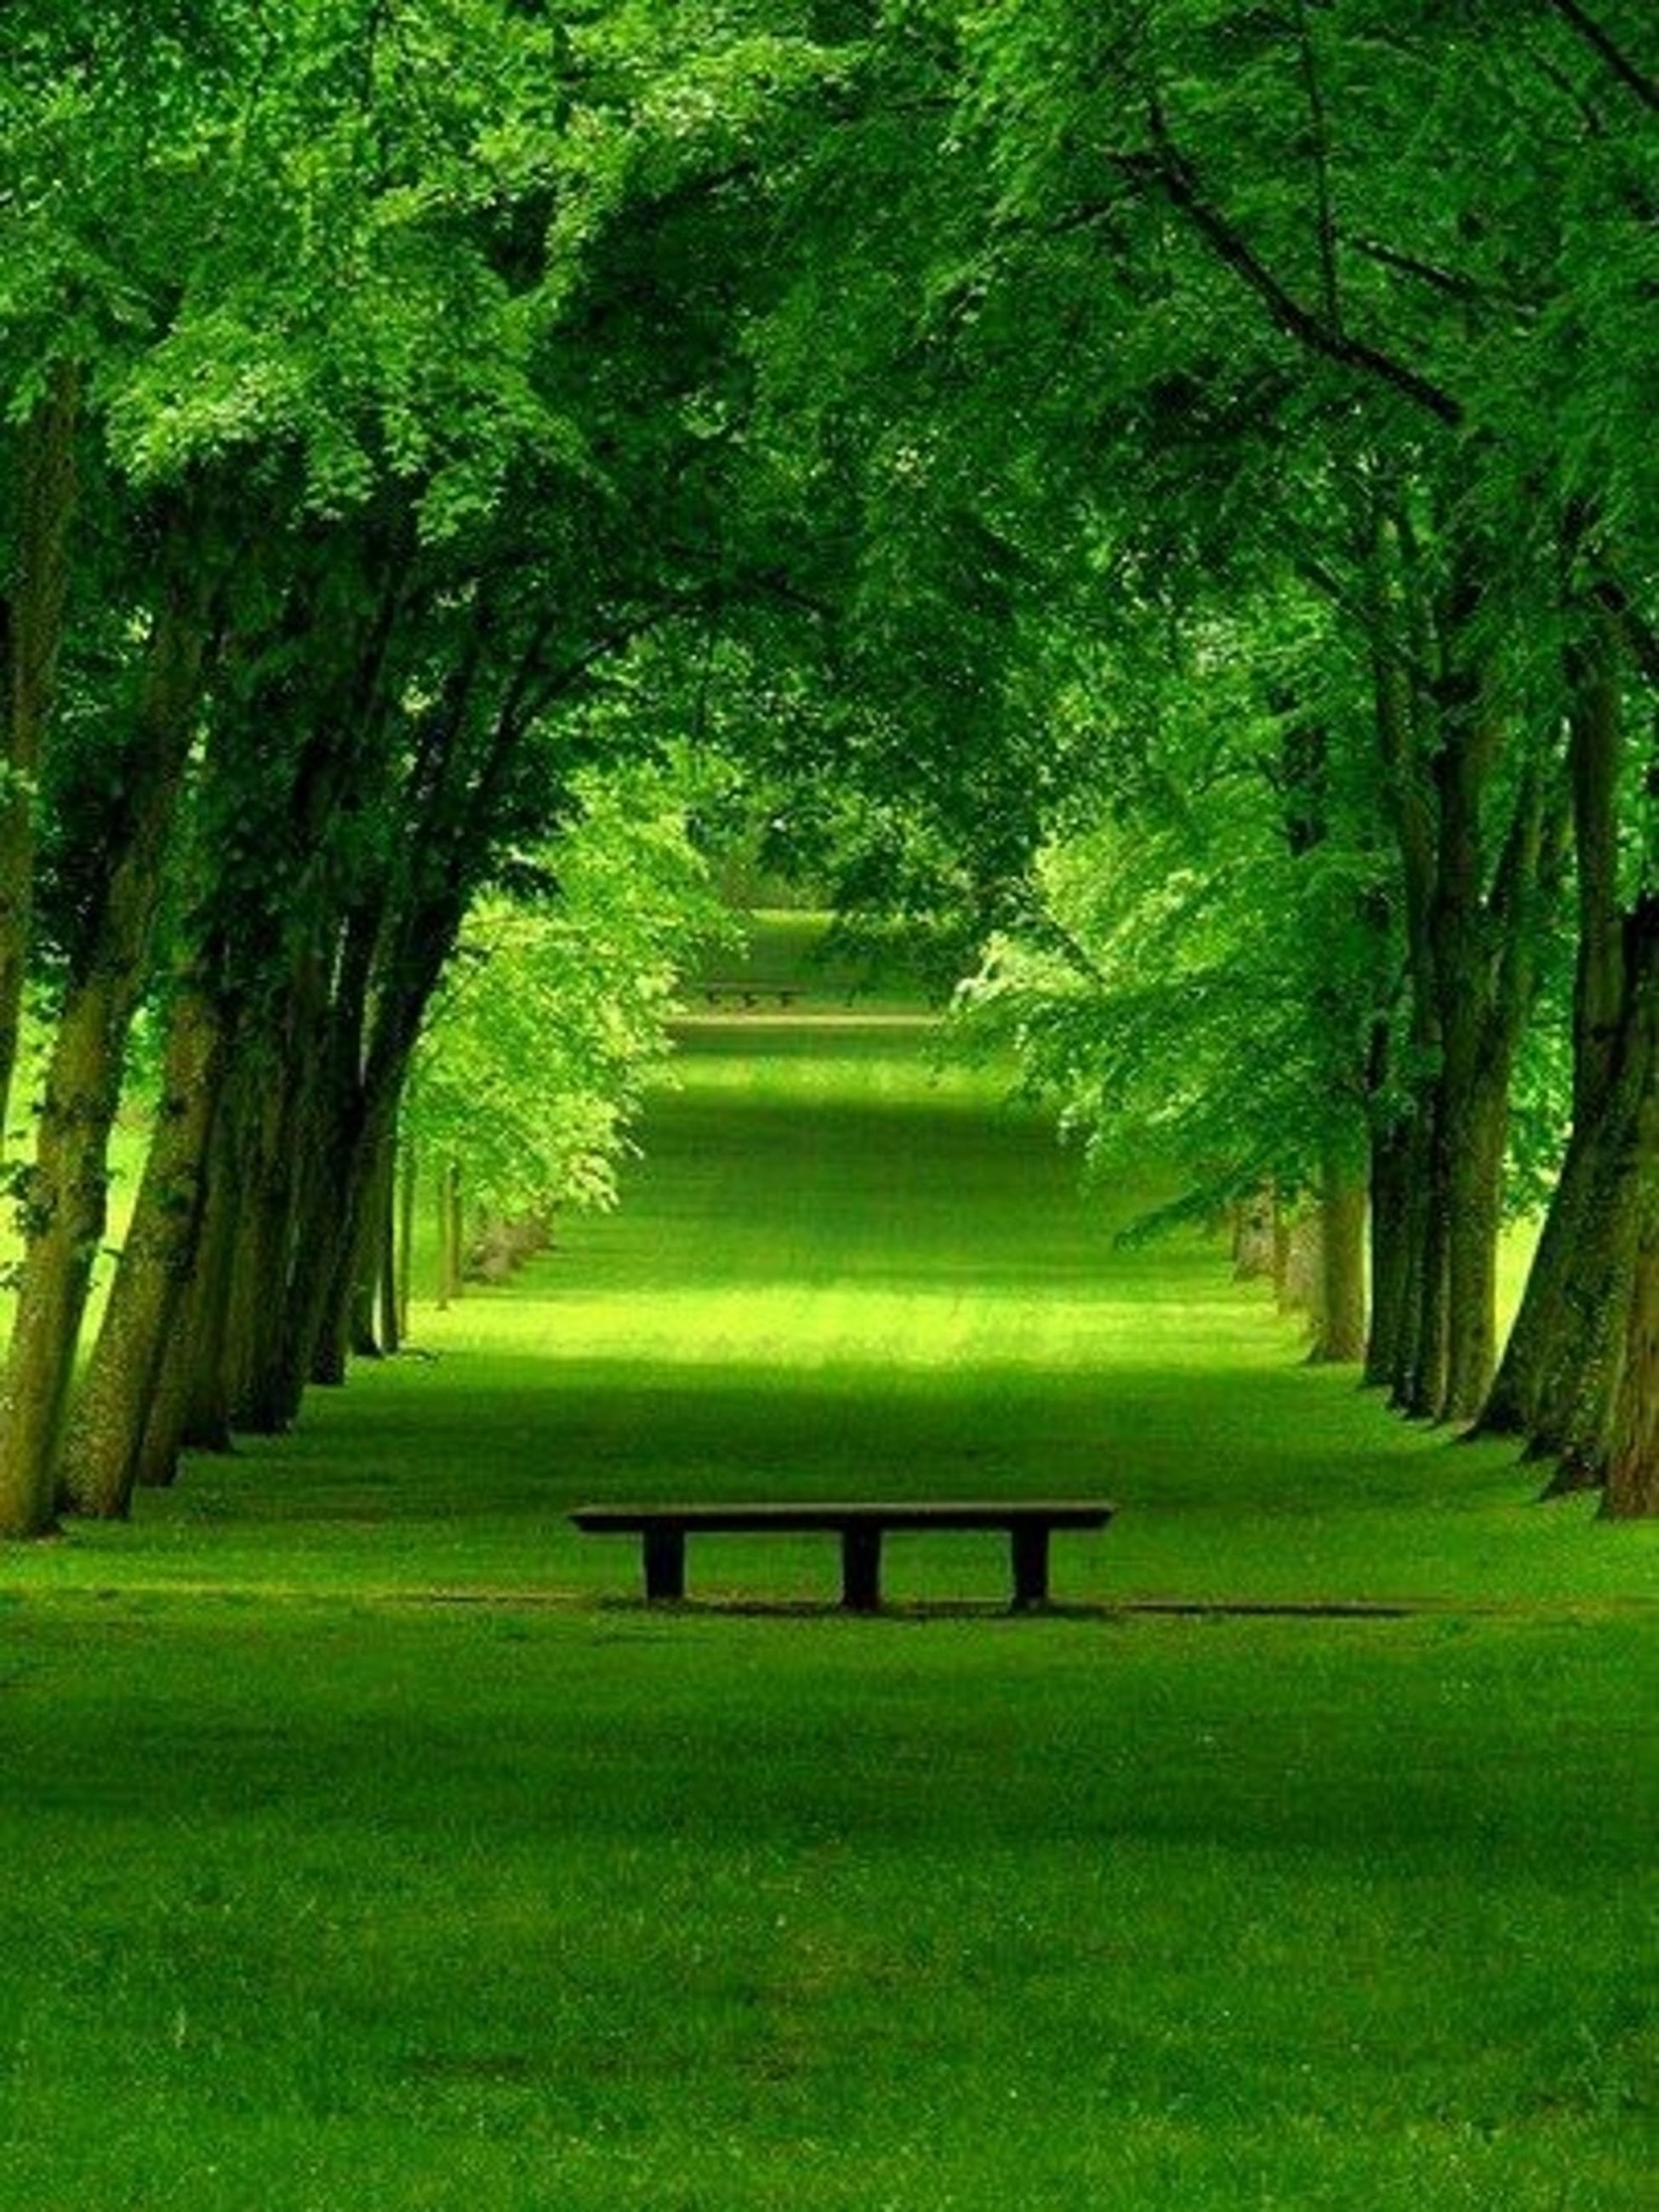 tree, green color, grass, tranquility, tranquil scene, growth, tree trunk, nature, park - man made space, beauty in nature, the way forward, scenics, lush foliage, branch, shadow, park, landscape, footpath, lawn, sunlight